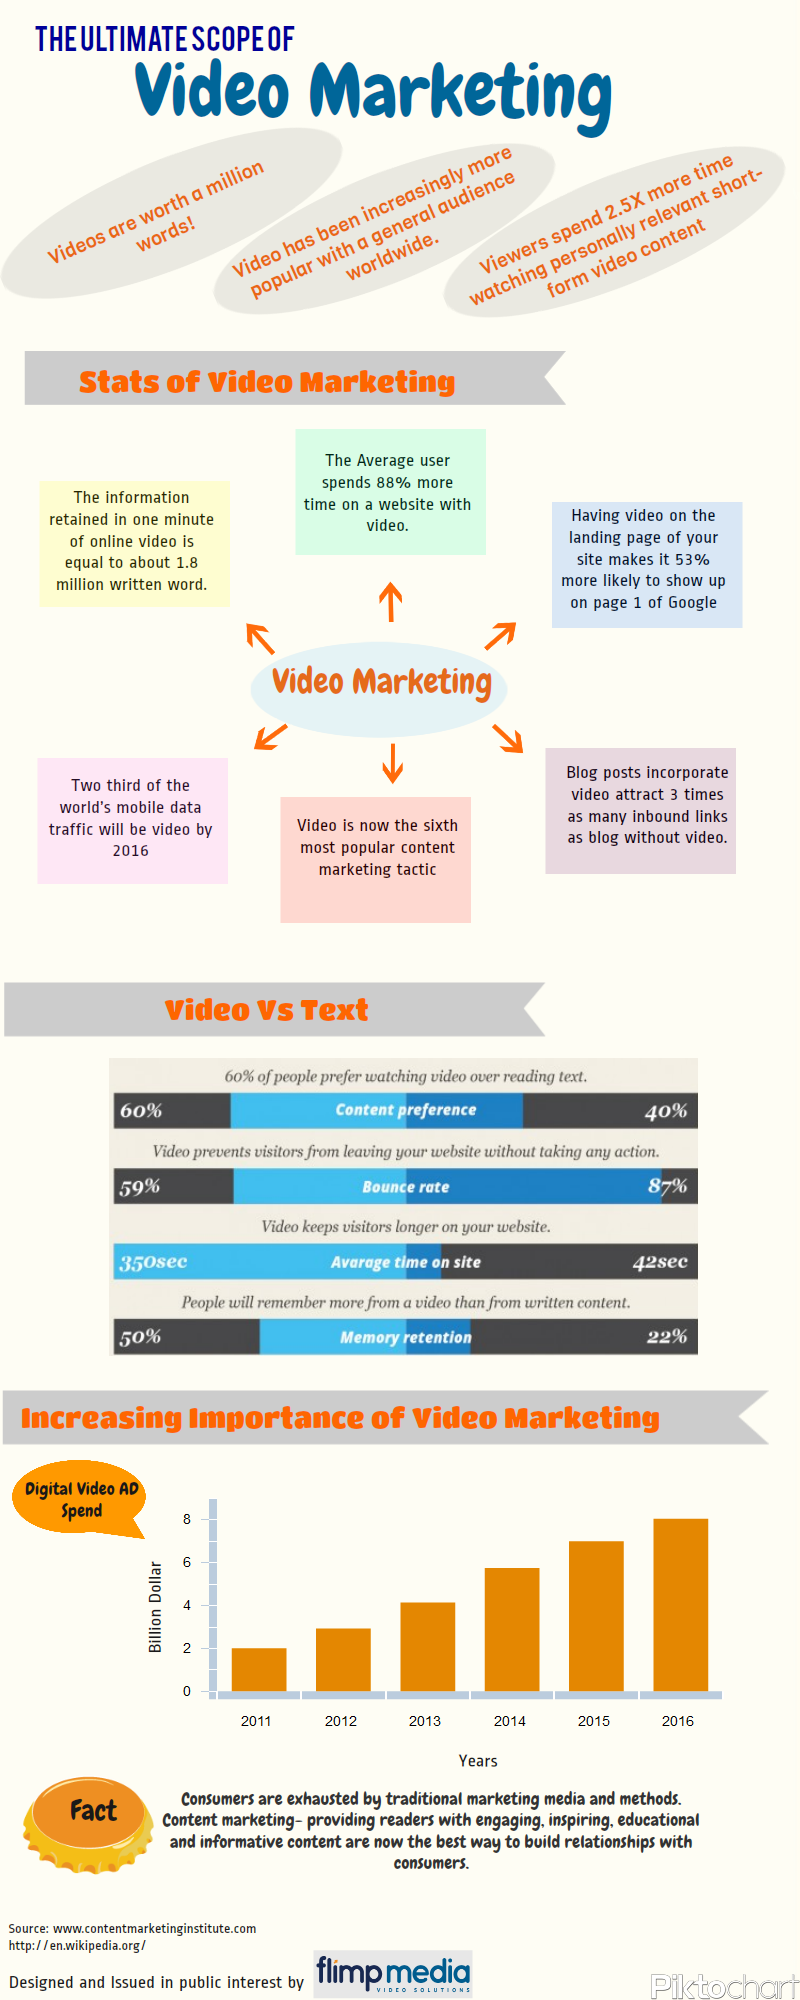 video marketing info grafik flimp media